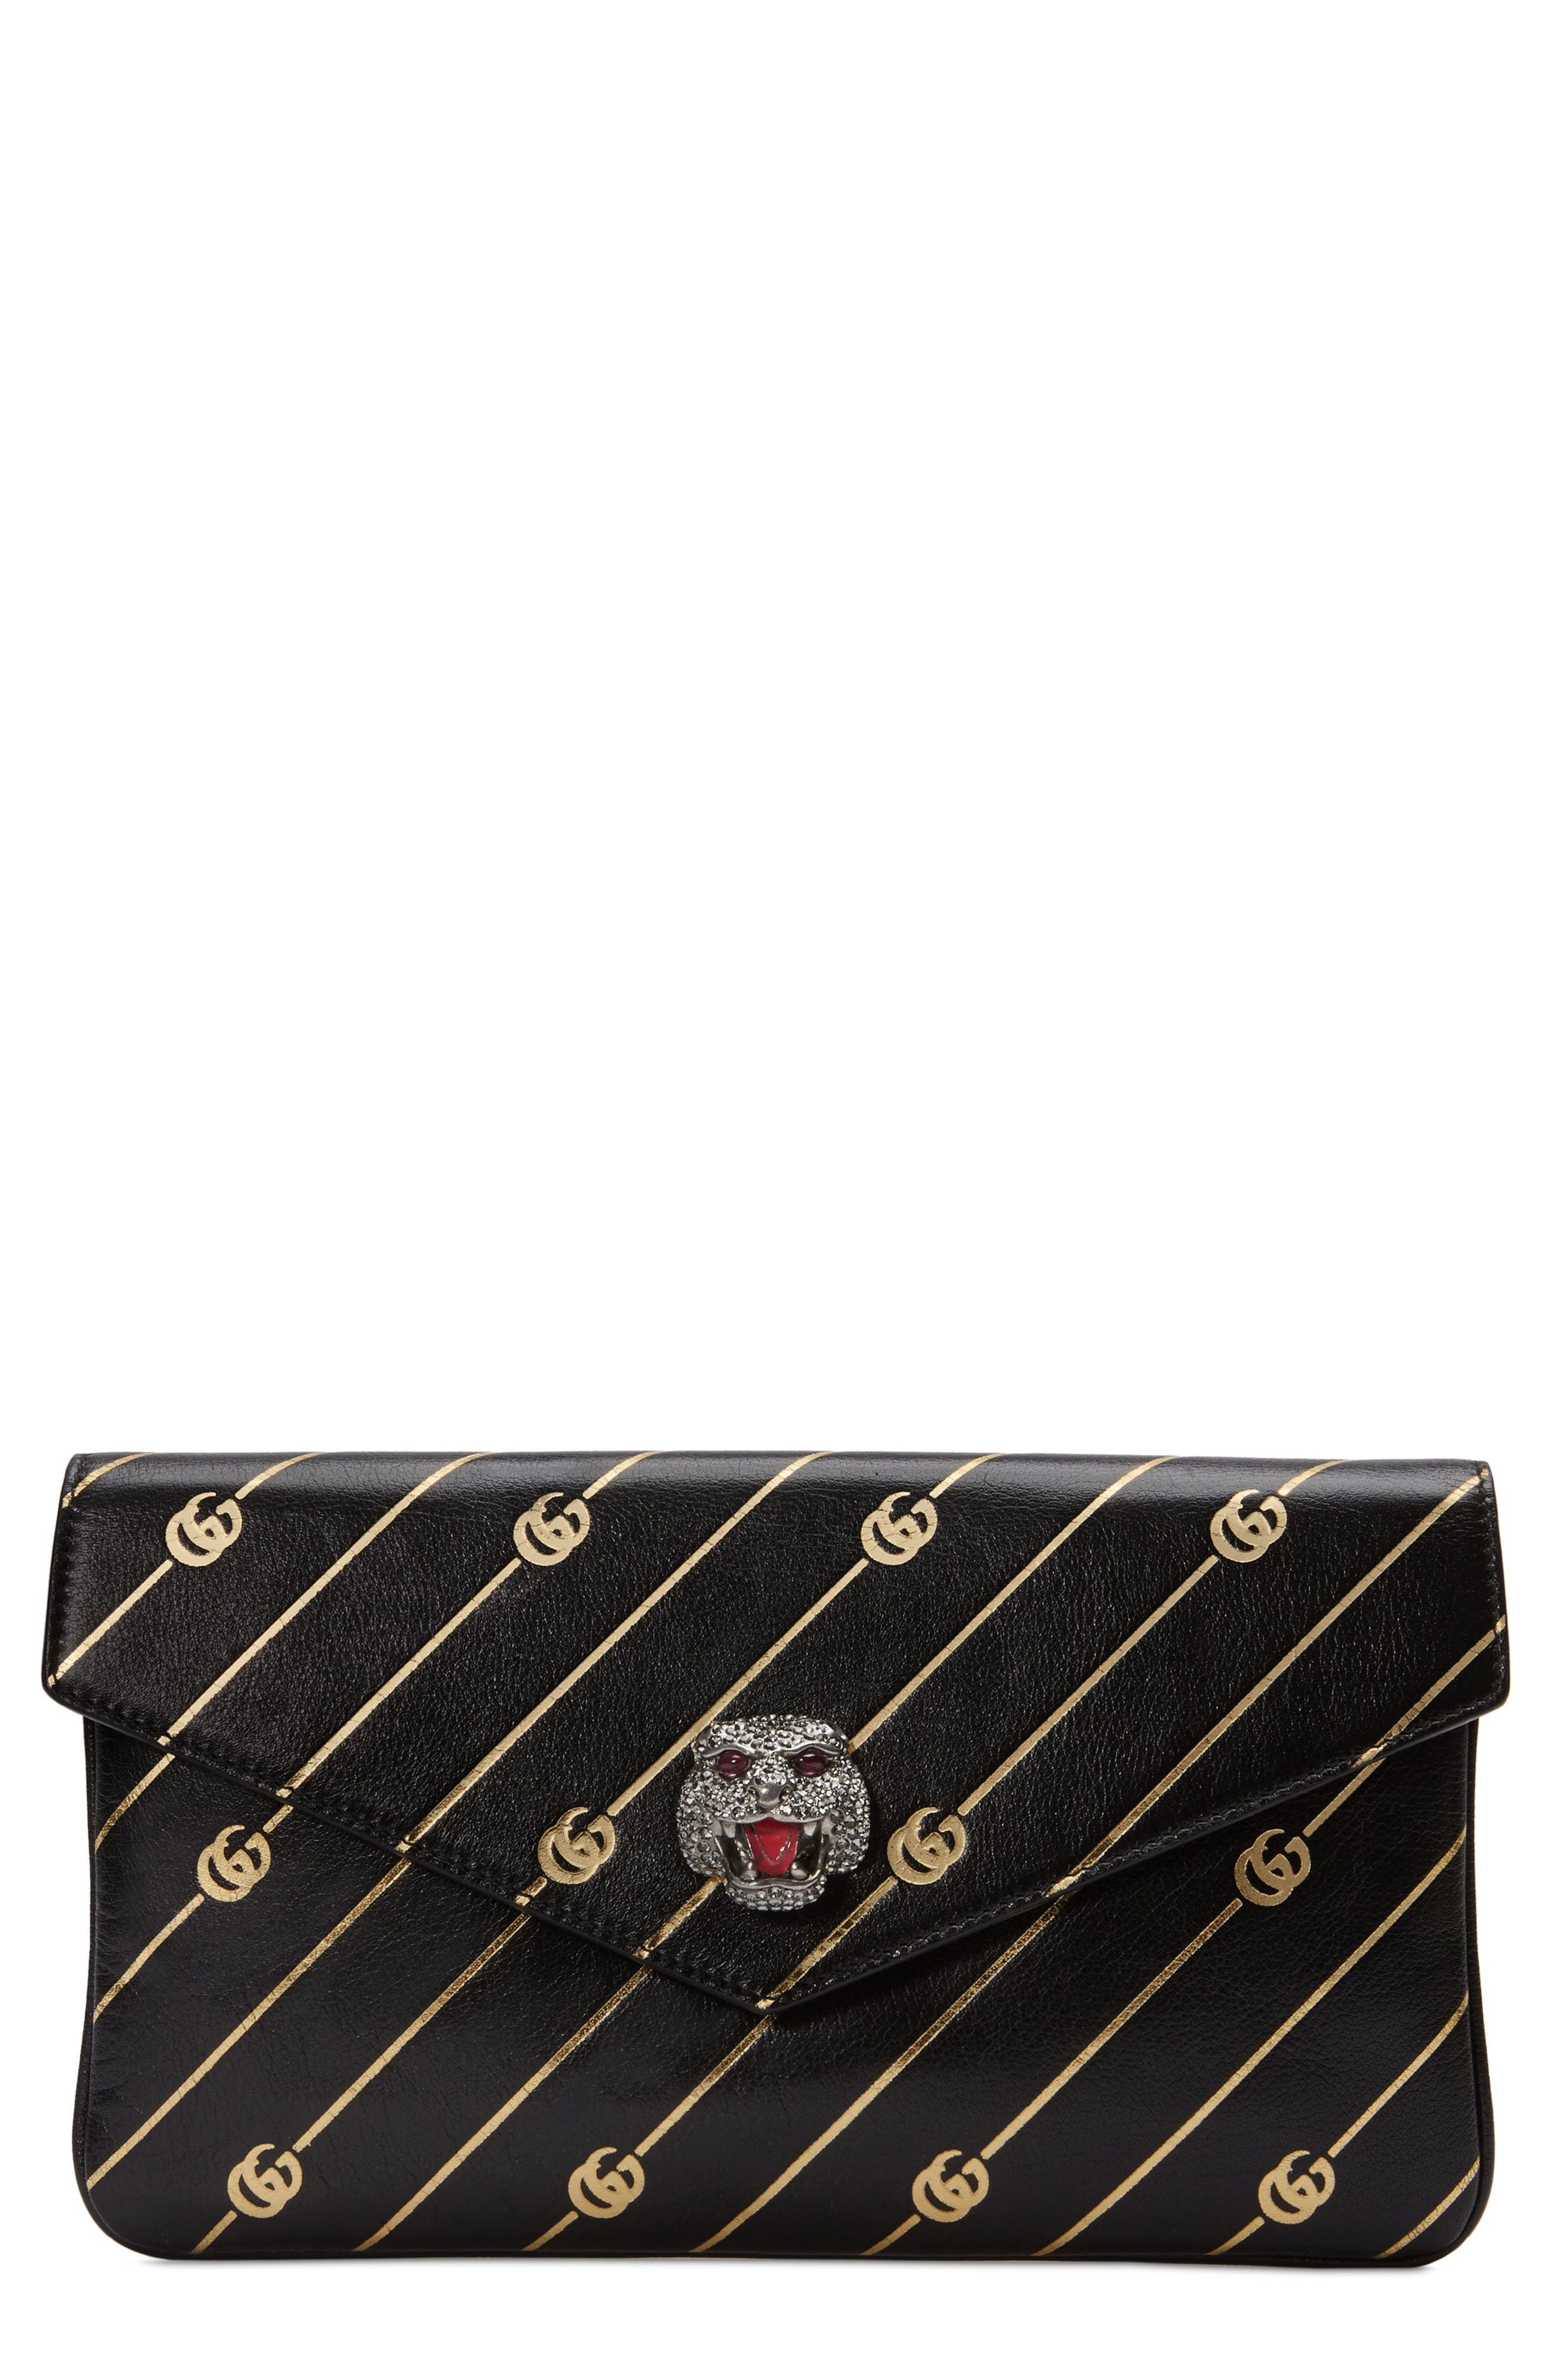 BROADWAY GG ARCHIVE-P LEATHER ENVELOPE CLUTCH - BLACK